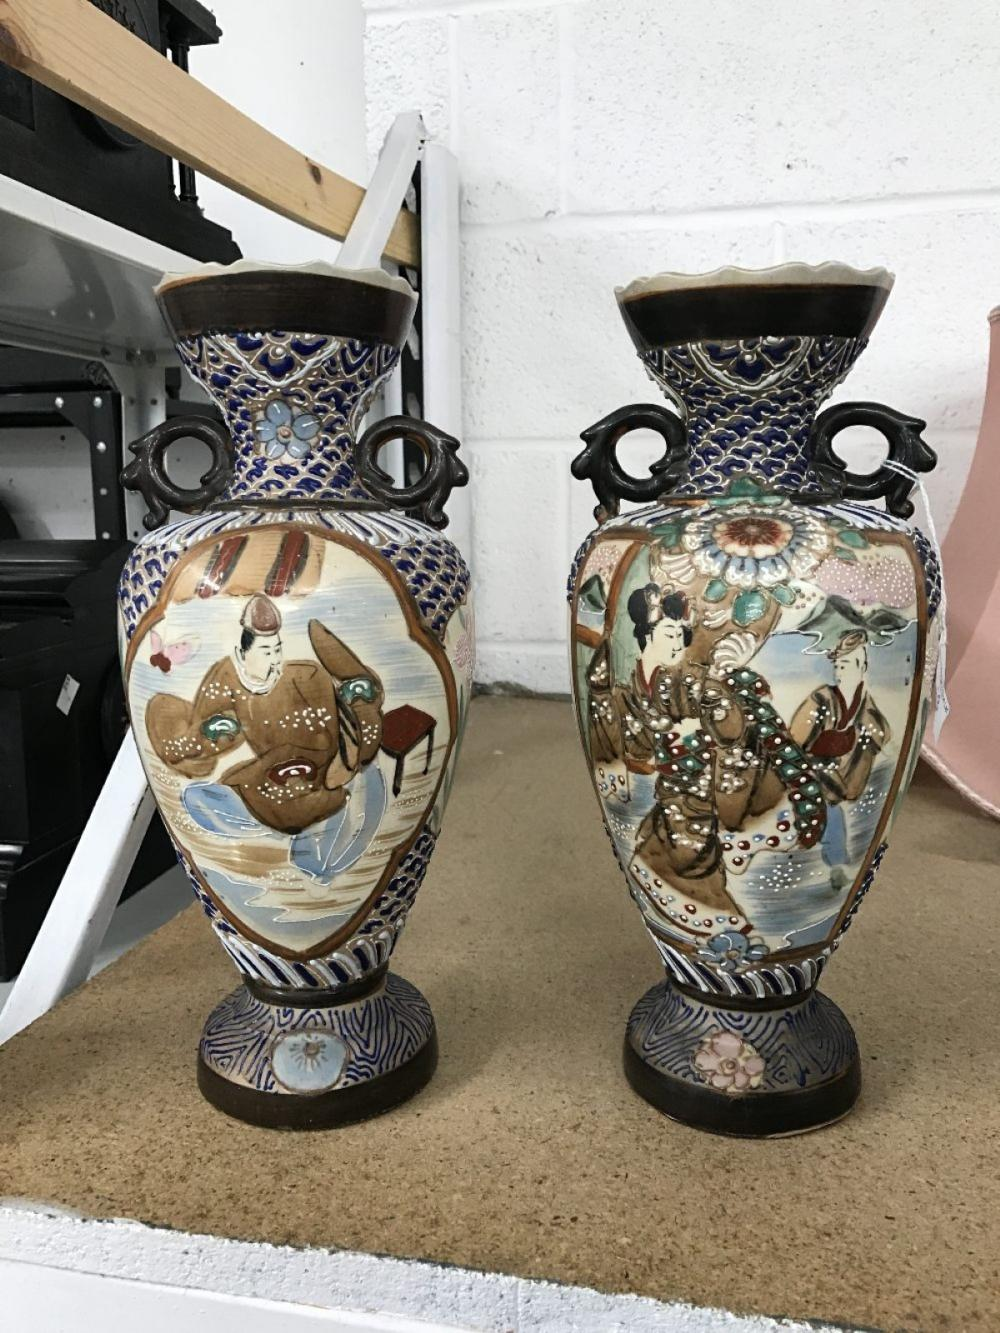 20th cent. Oriental: Vases with painted panels of figures, male & female - a pair. 12ins.